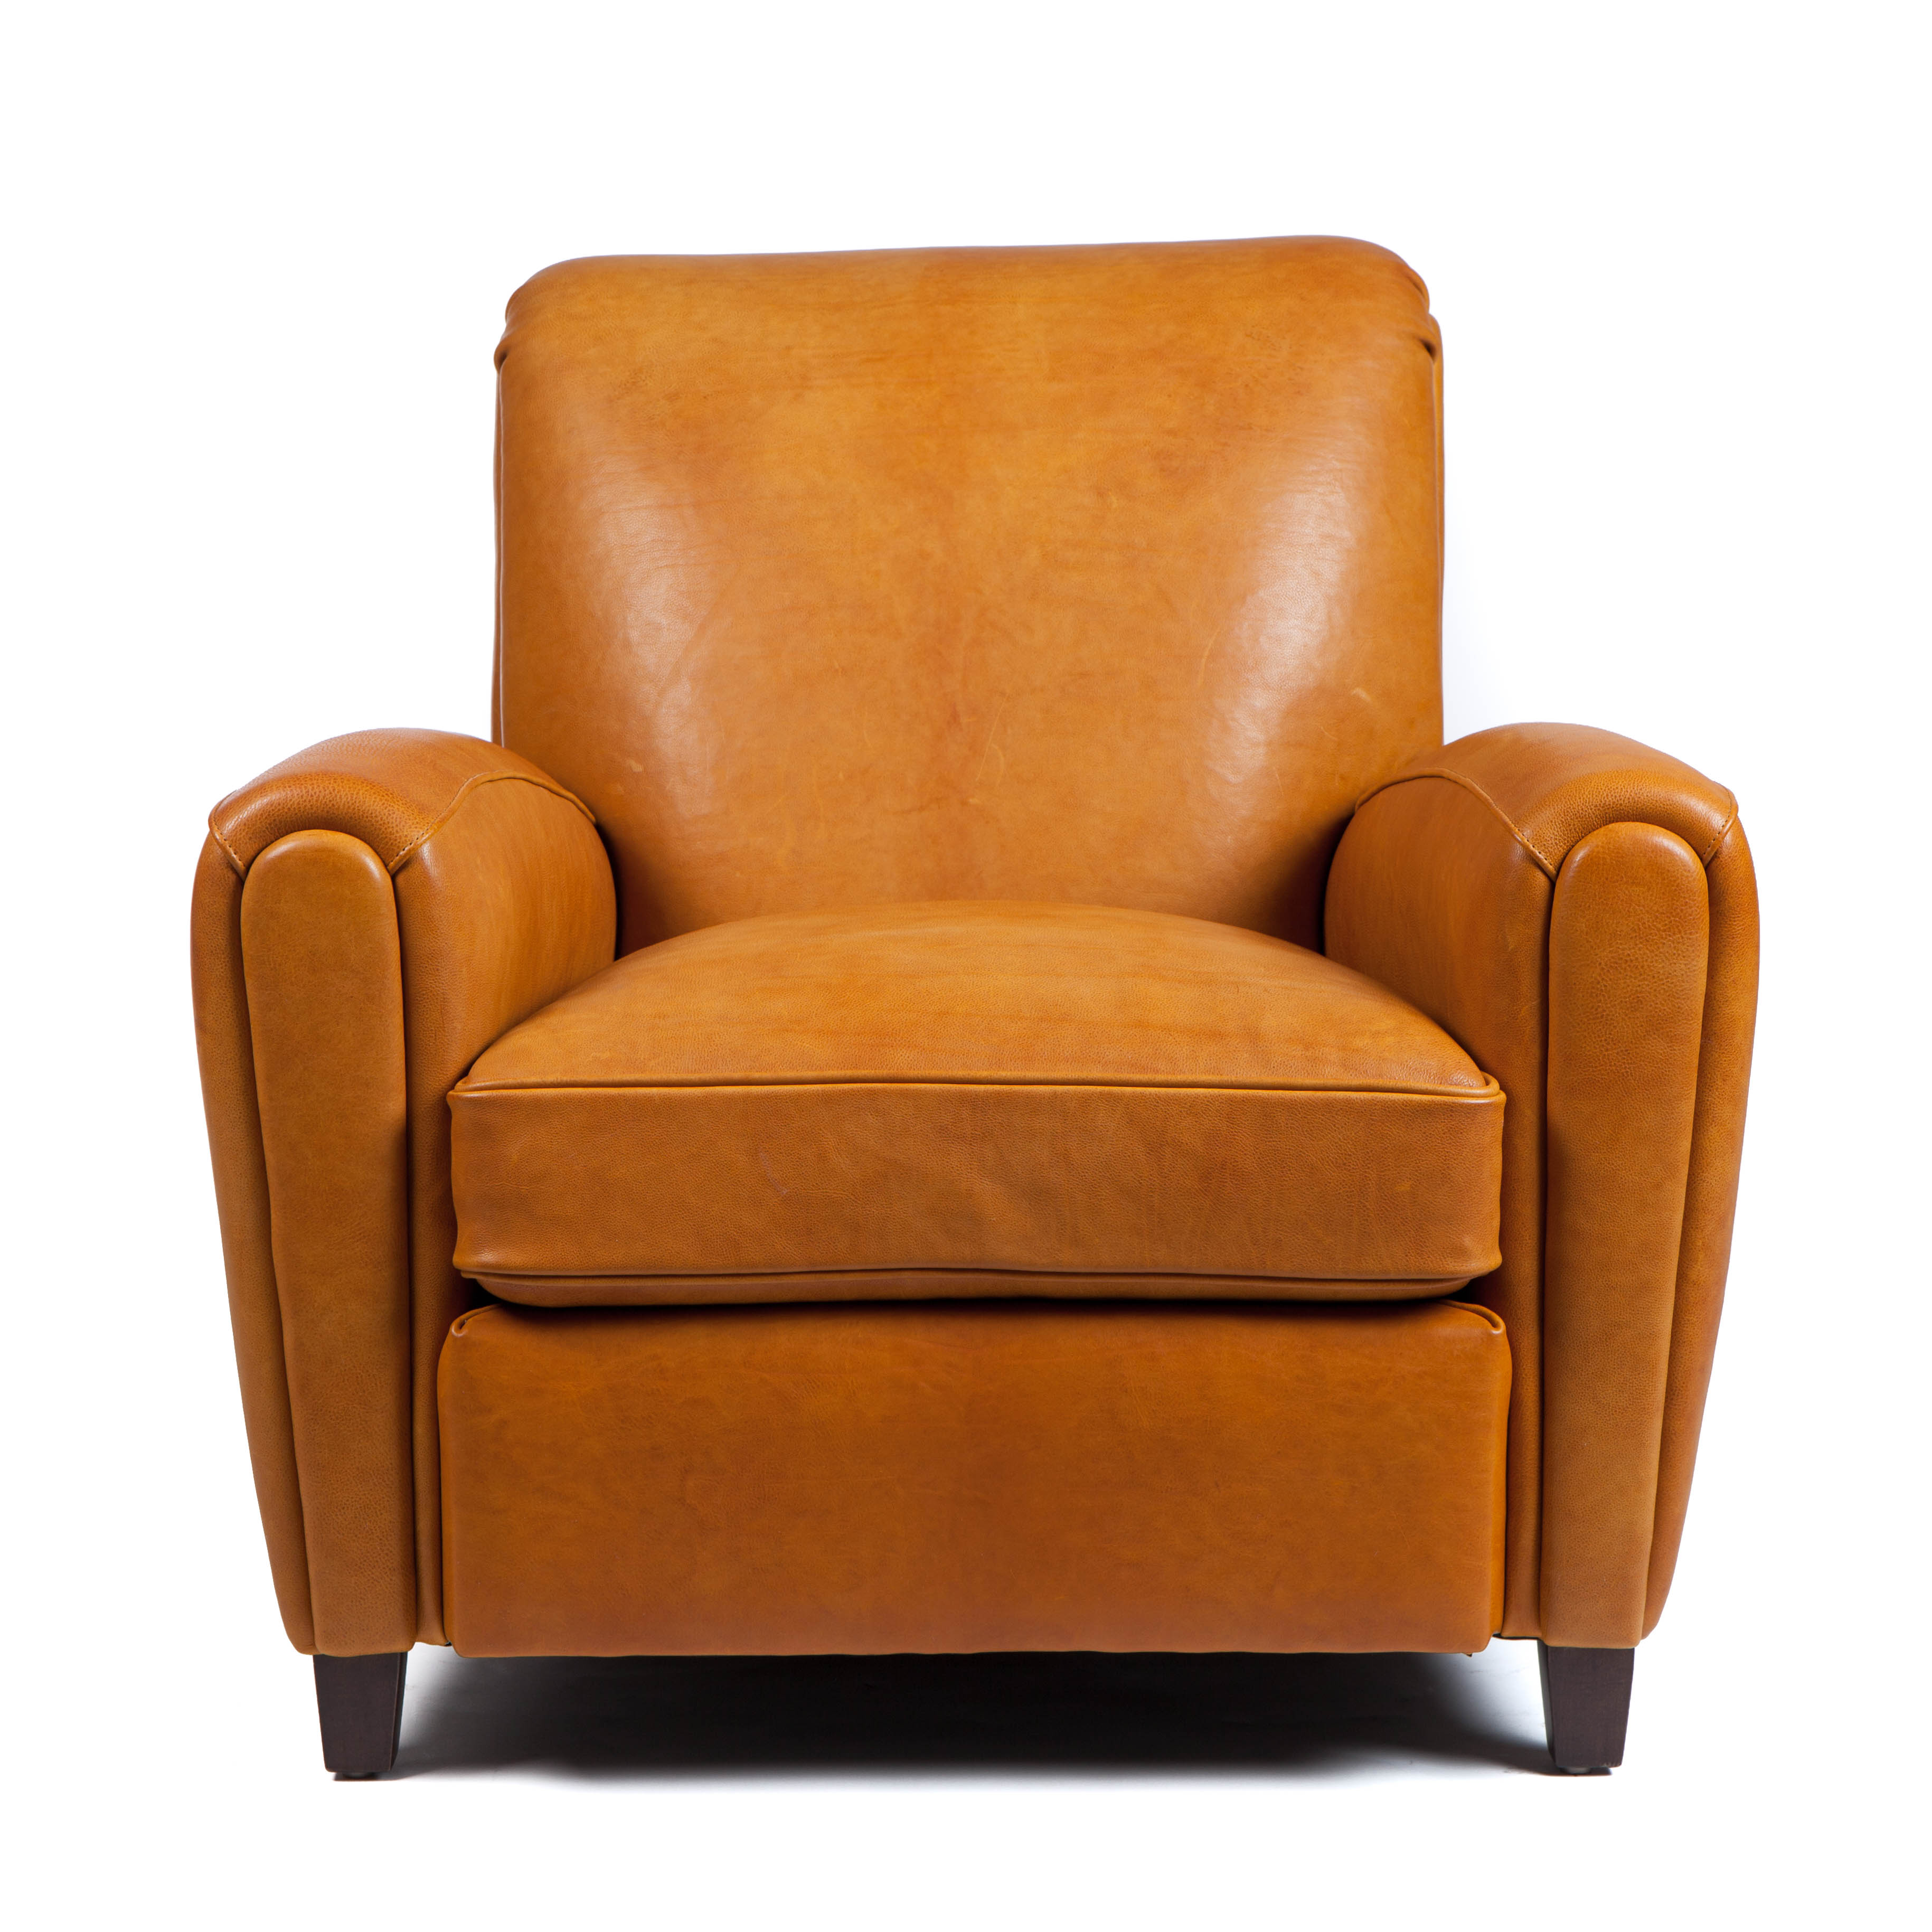 Moore & Giles Traynham Club Chair Leather No 9 in Modern Saddle